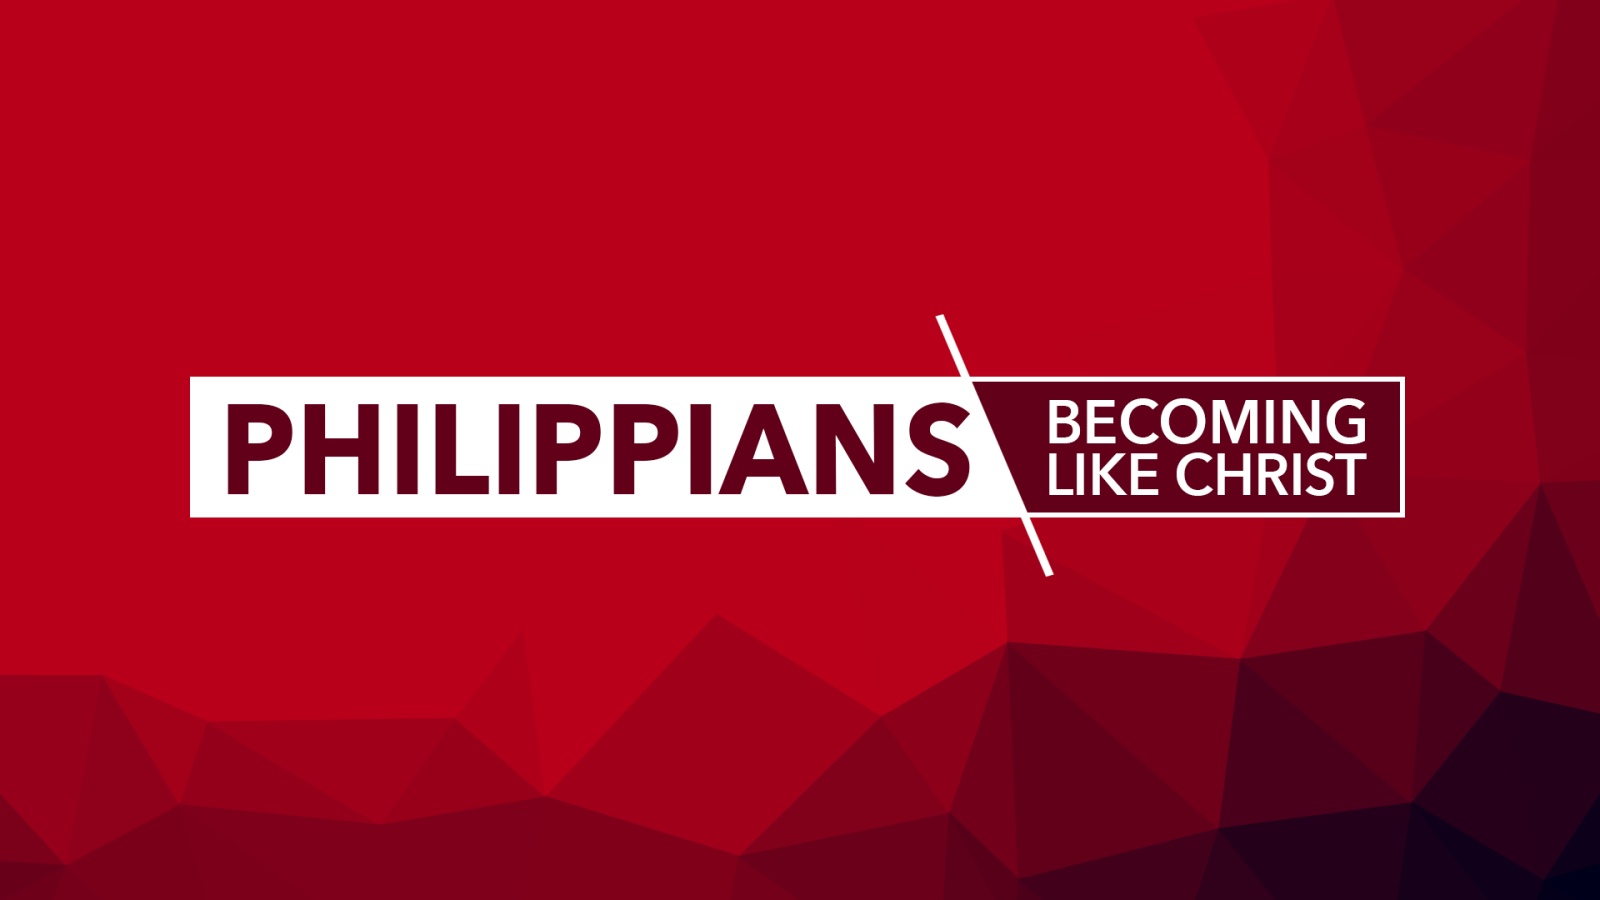 Philippians - Becoming Like Christ